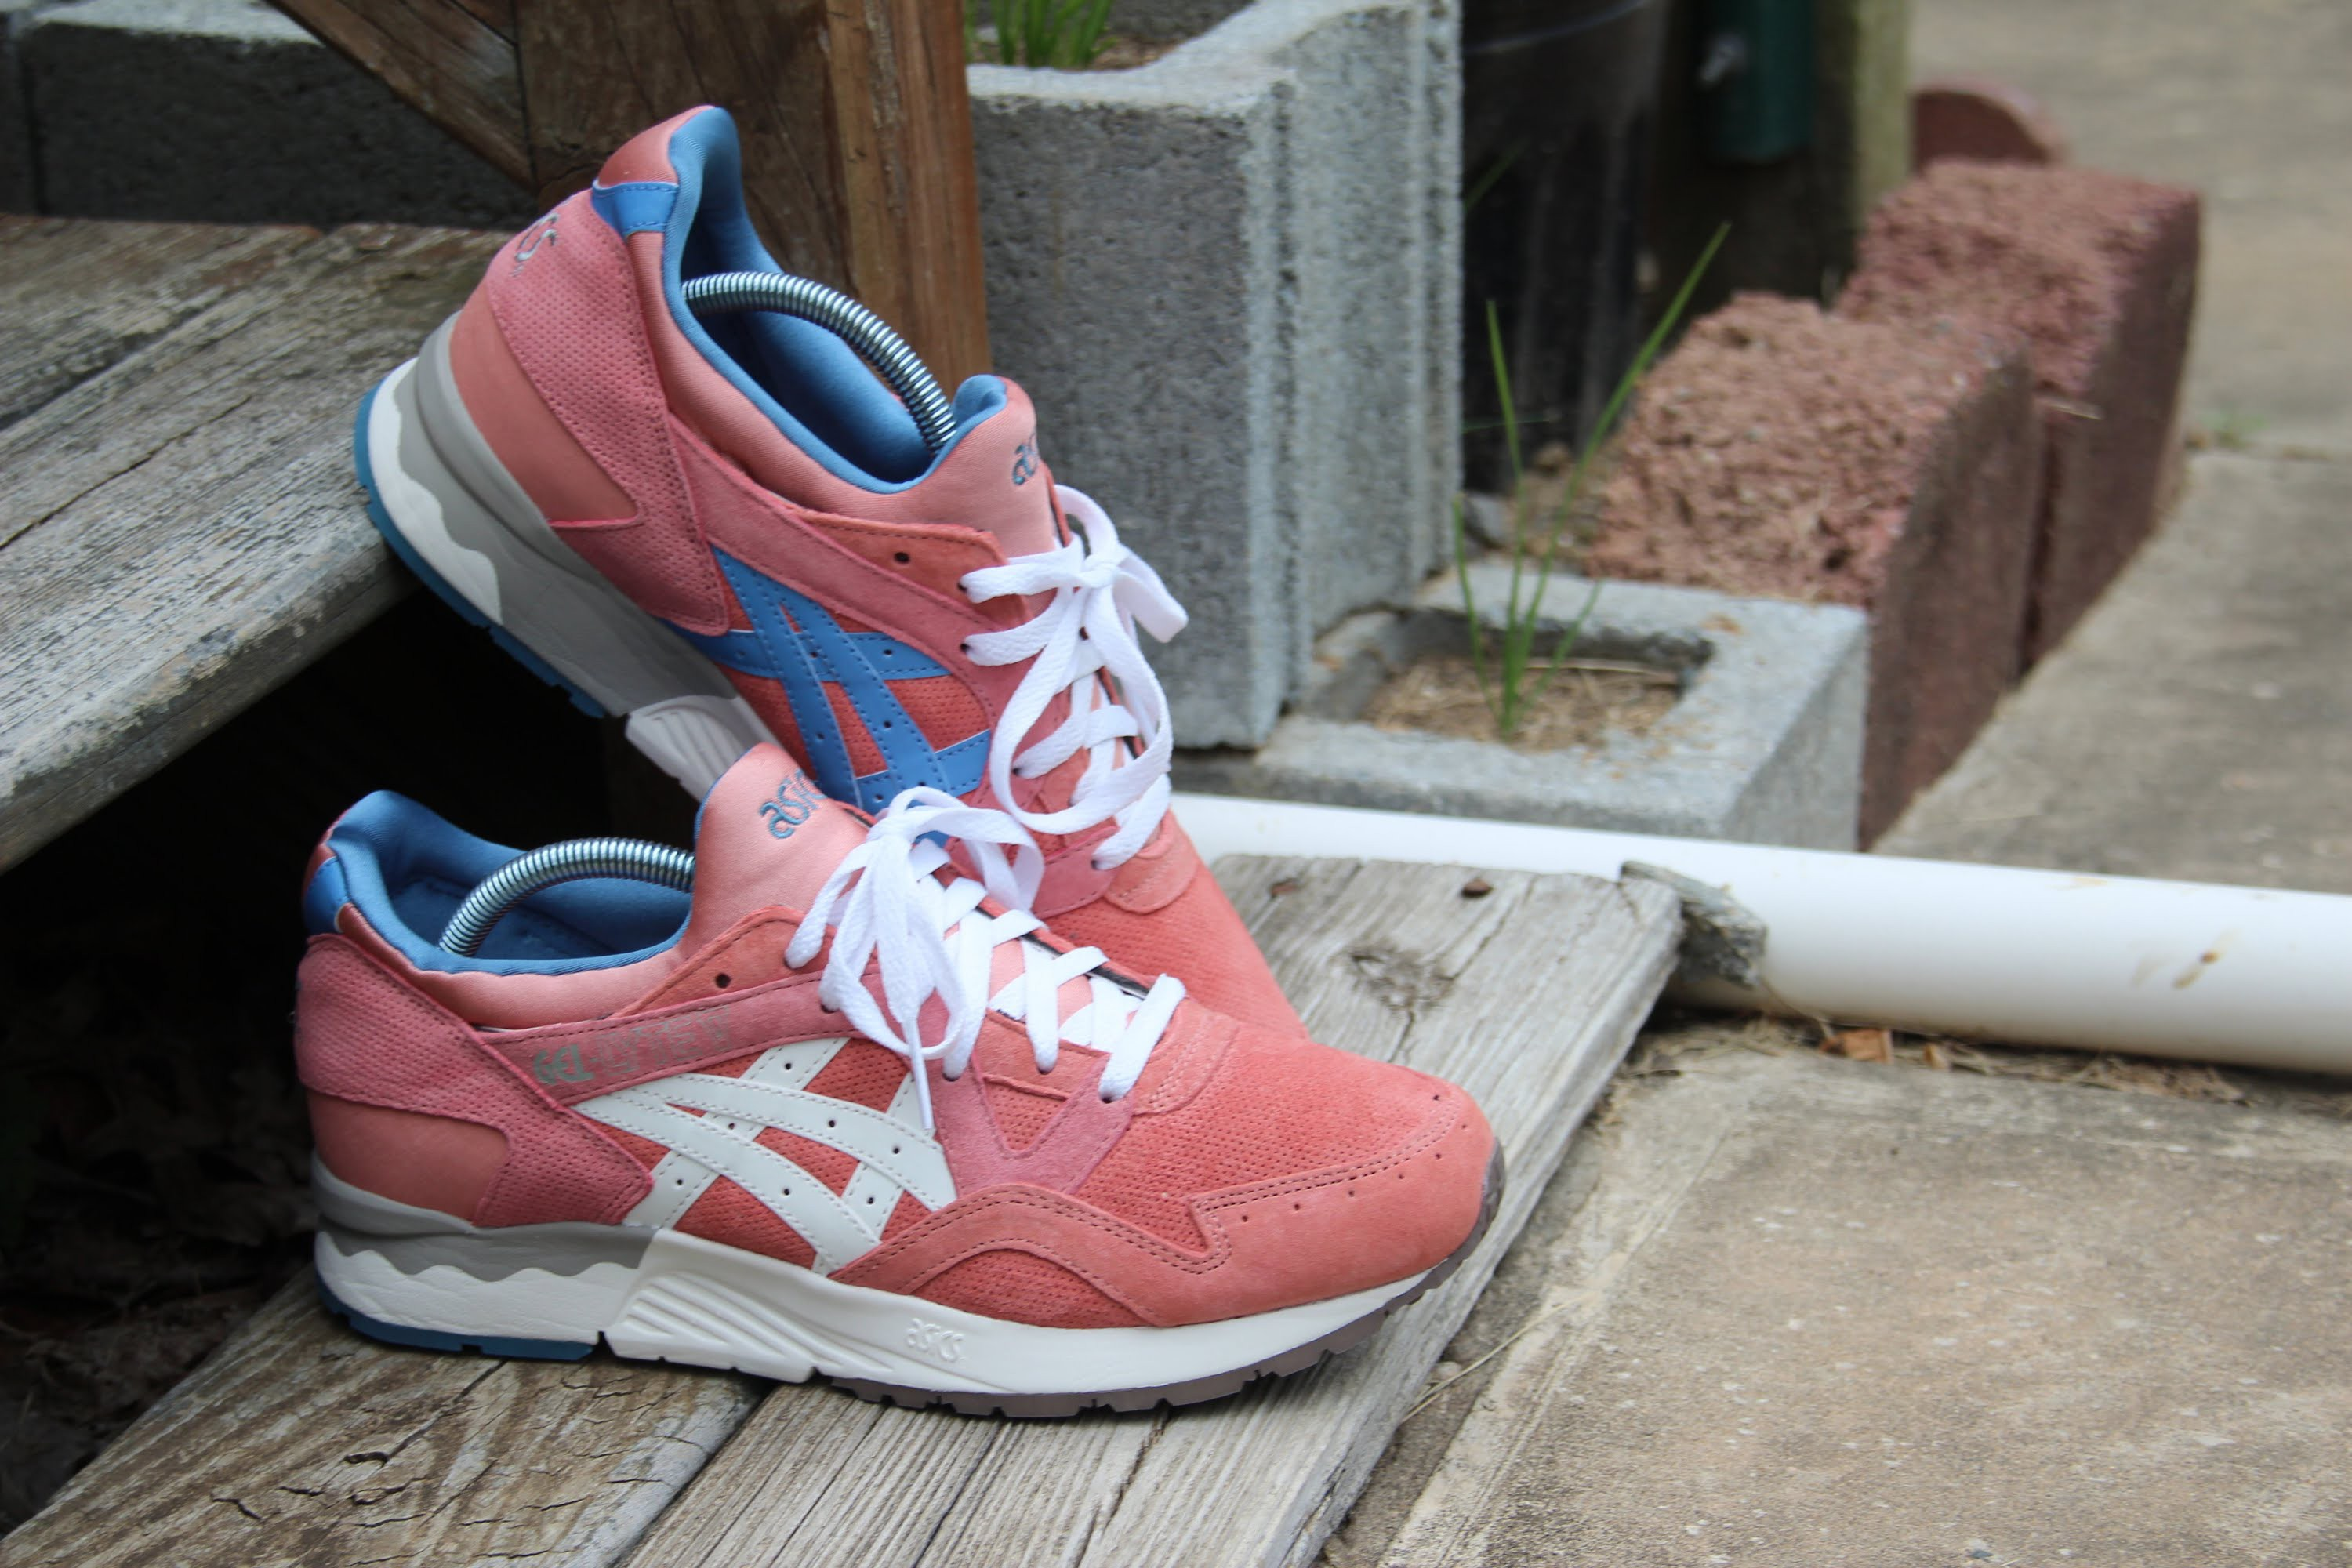 7847466c597 ronnie fieg x asics gel lyte v rose gold